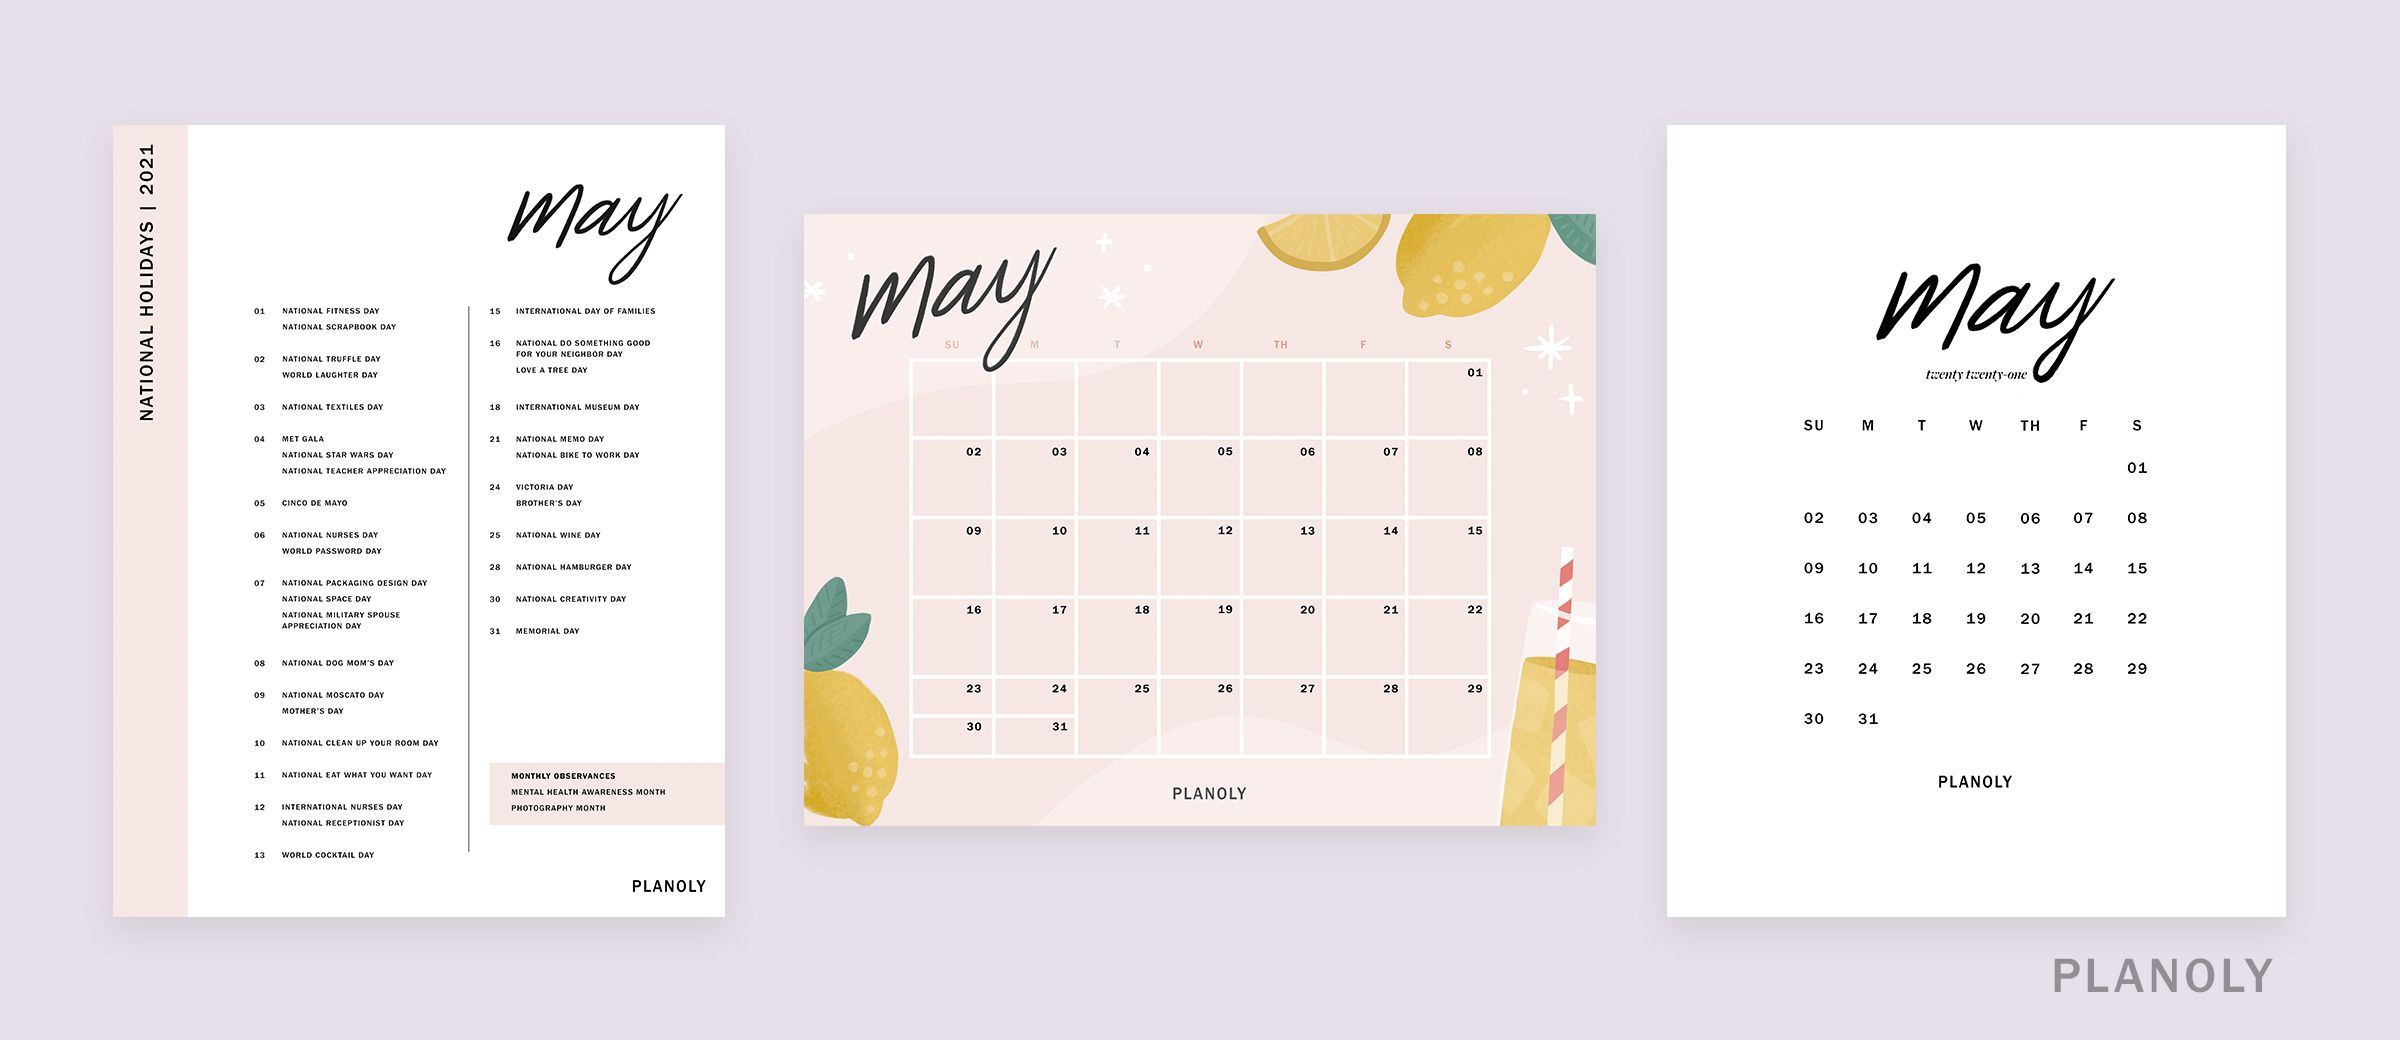 PLANOLY-IG Feed-Q2 Content Calendars-Image 2